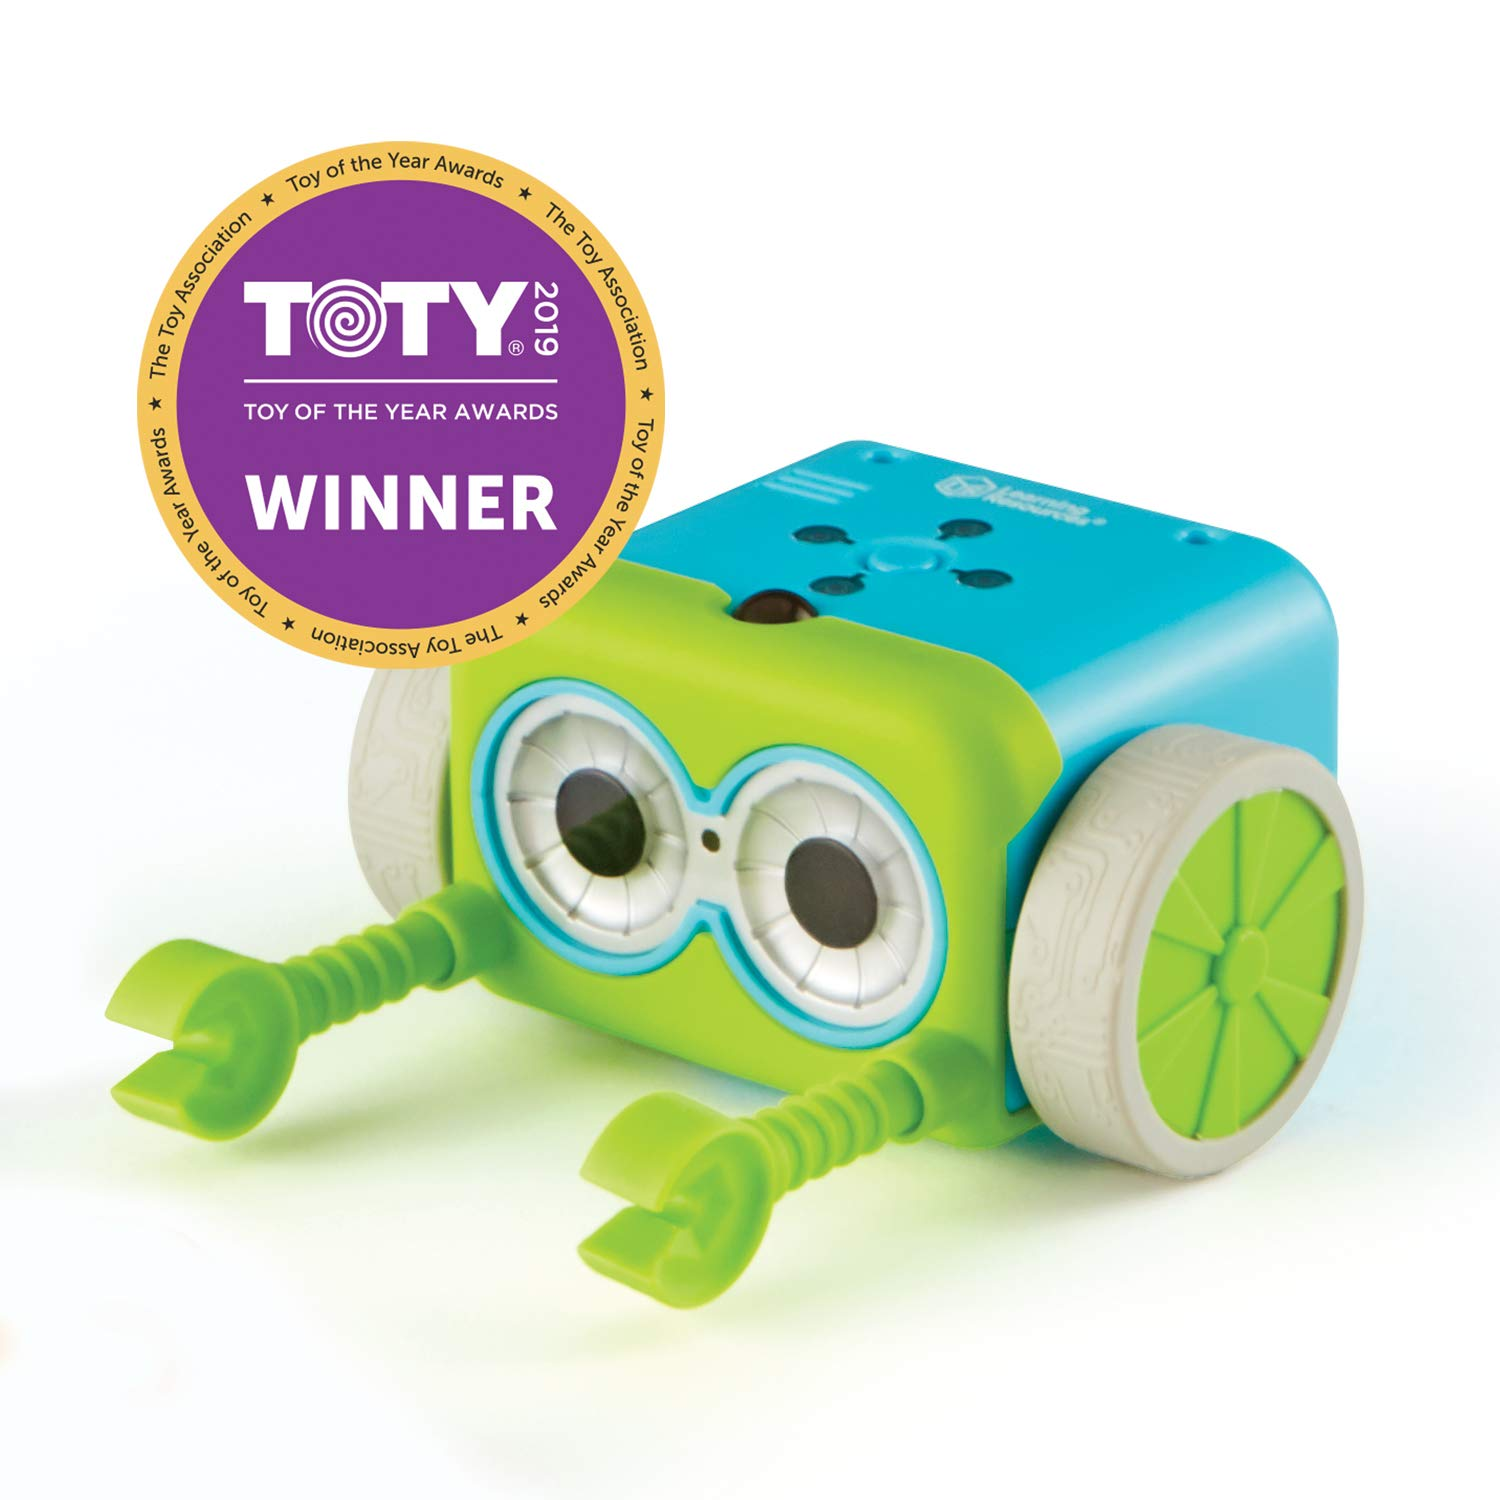 Learning Resources Botley the Coding Robot Activity Set, Innovative Toy of The Year Award Winner by Learning Resources